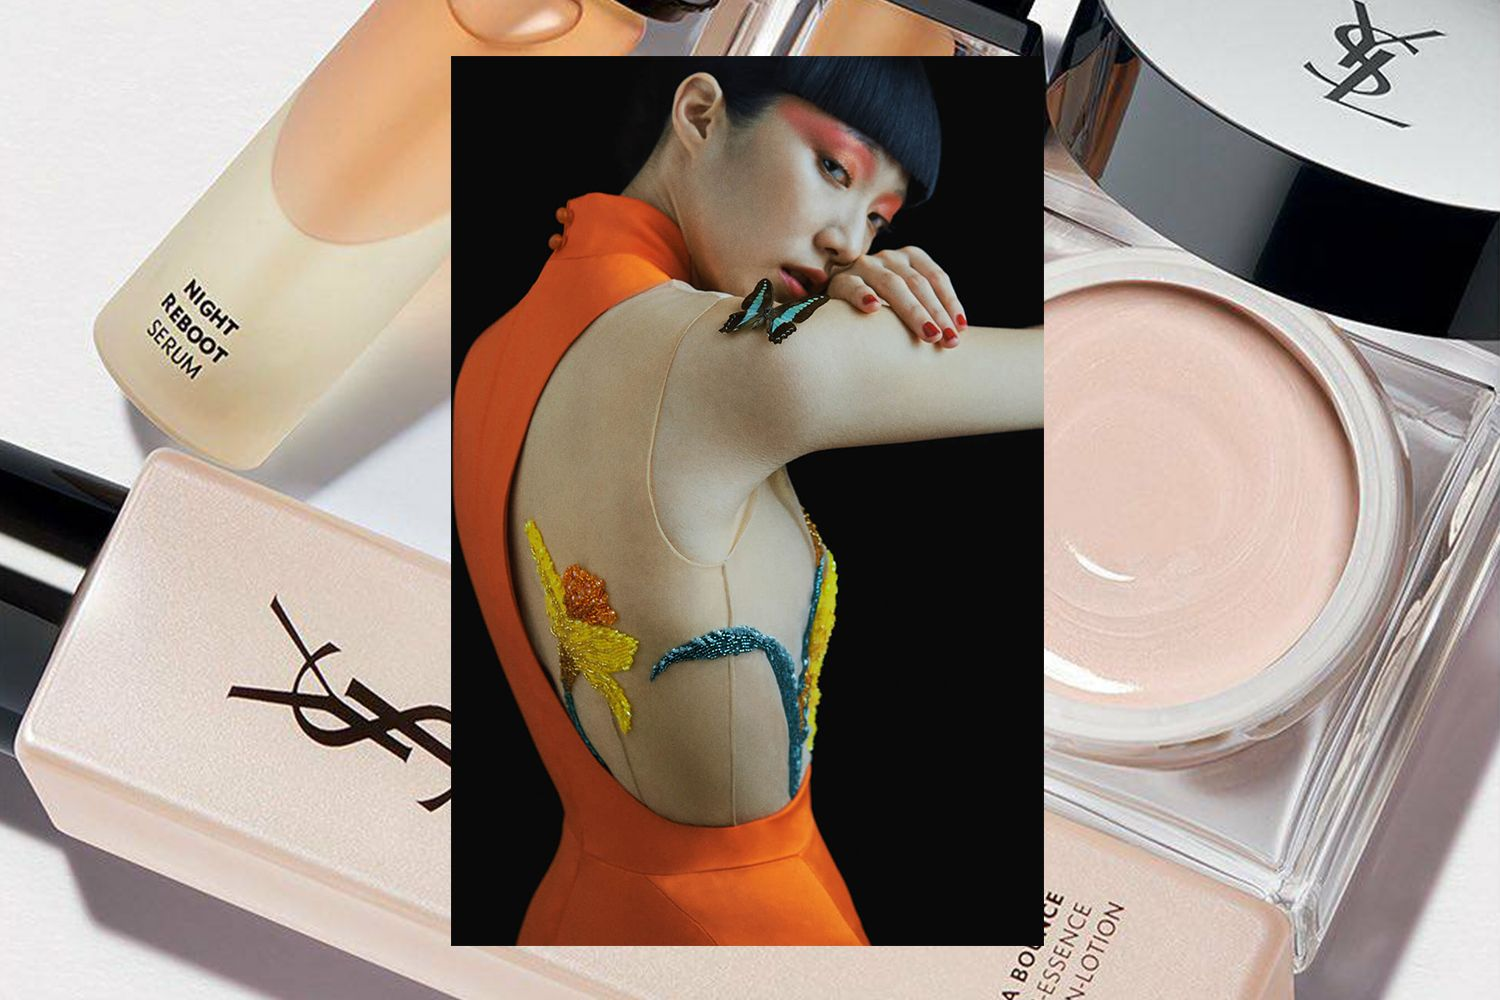 Editor's Picks: YSL's New Foolproof Skincare Line, Stylish Qipao And More!